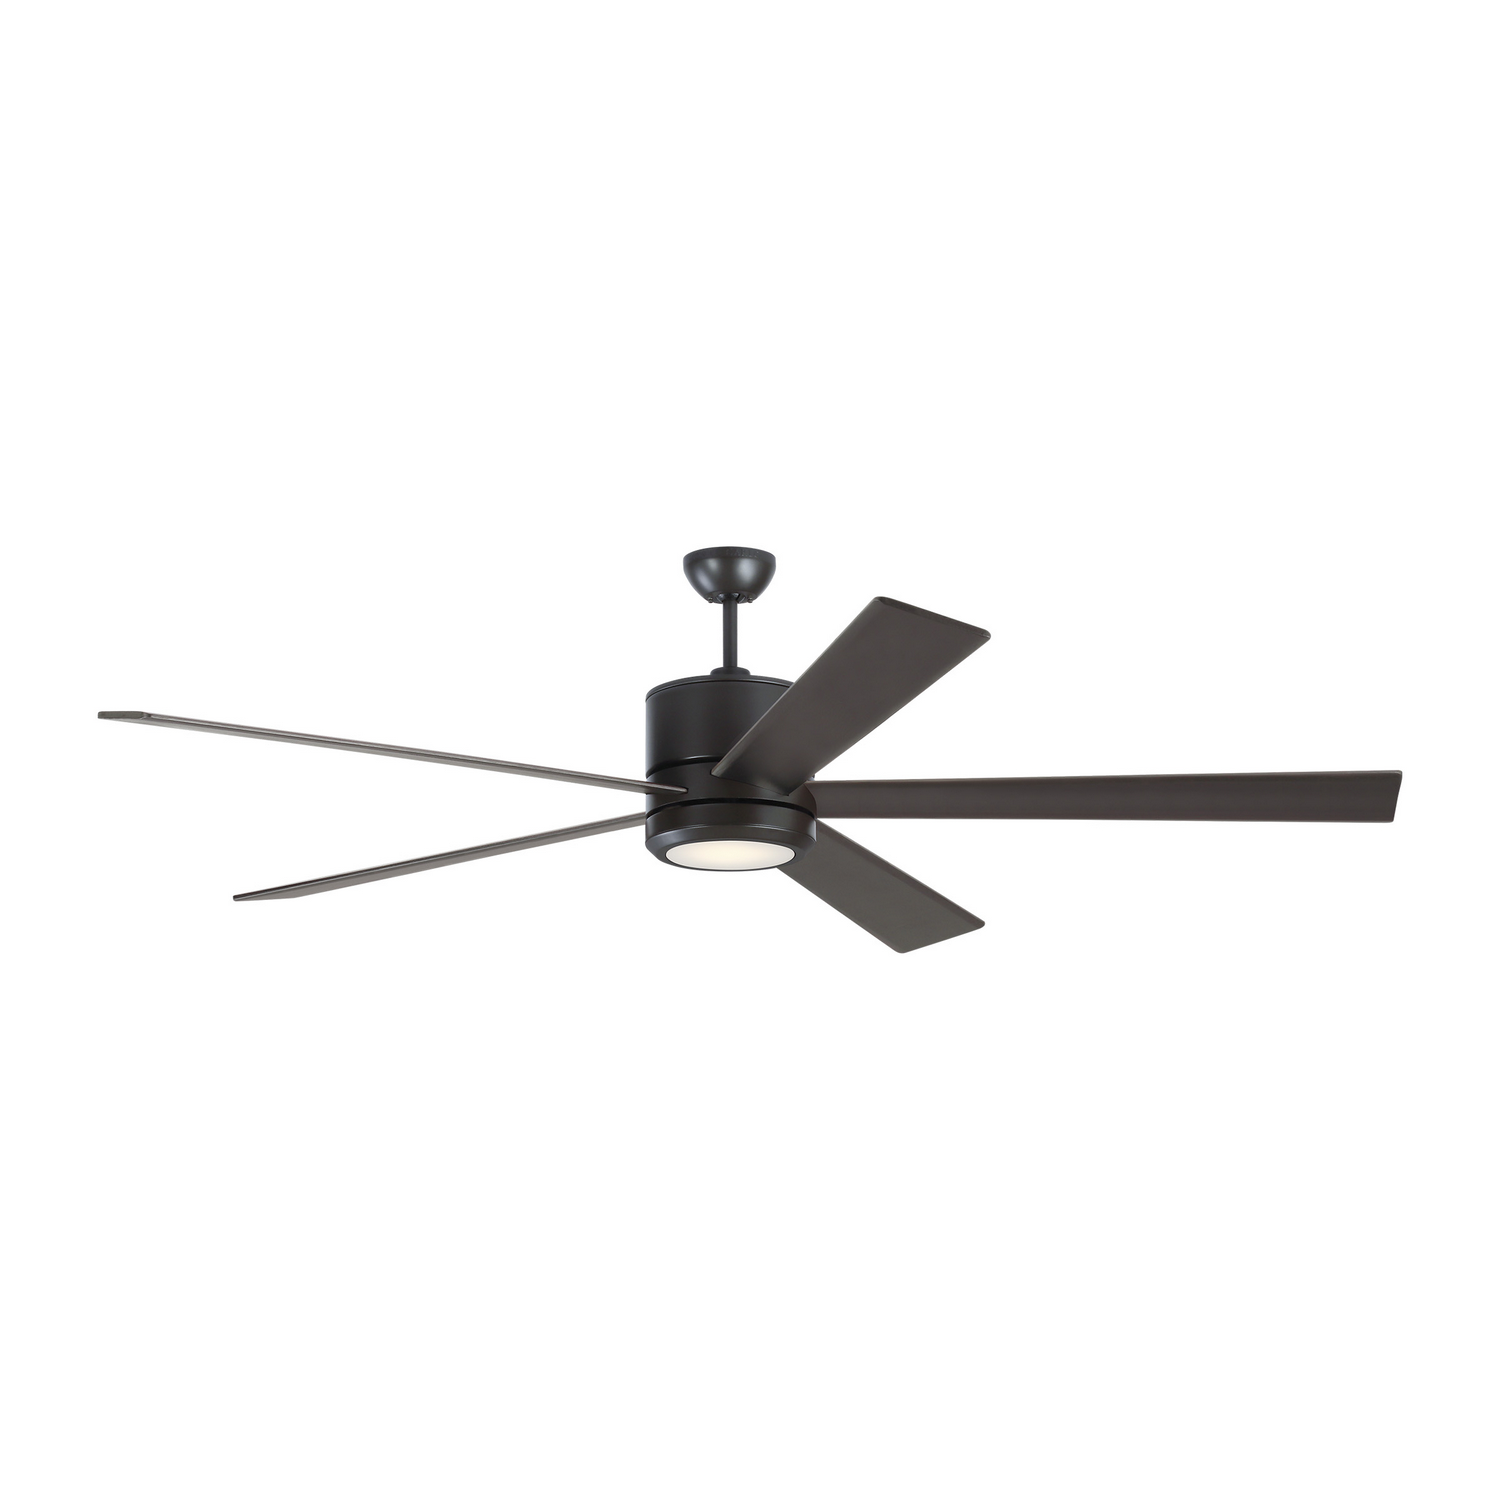 72 inchCeiling Fan from the Vision 72 collection by Monte Carlo 5VMR72OZD